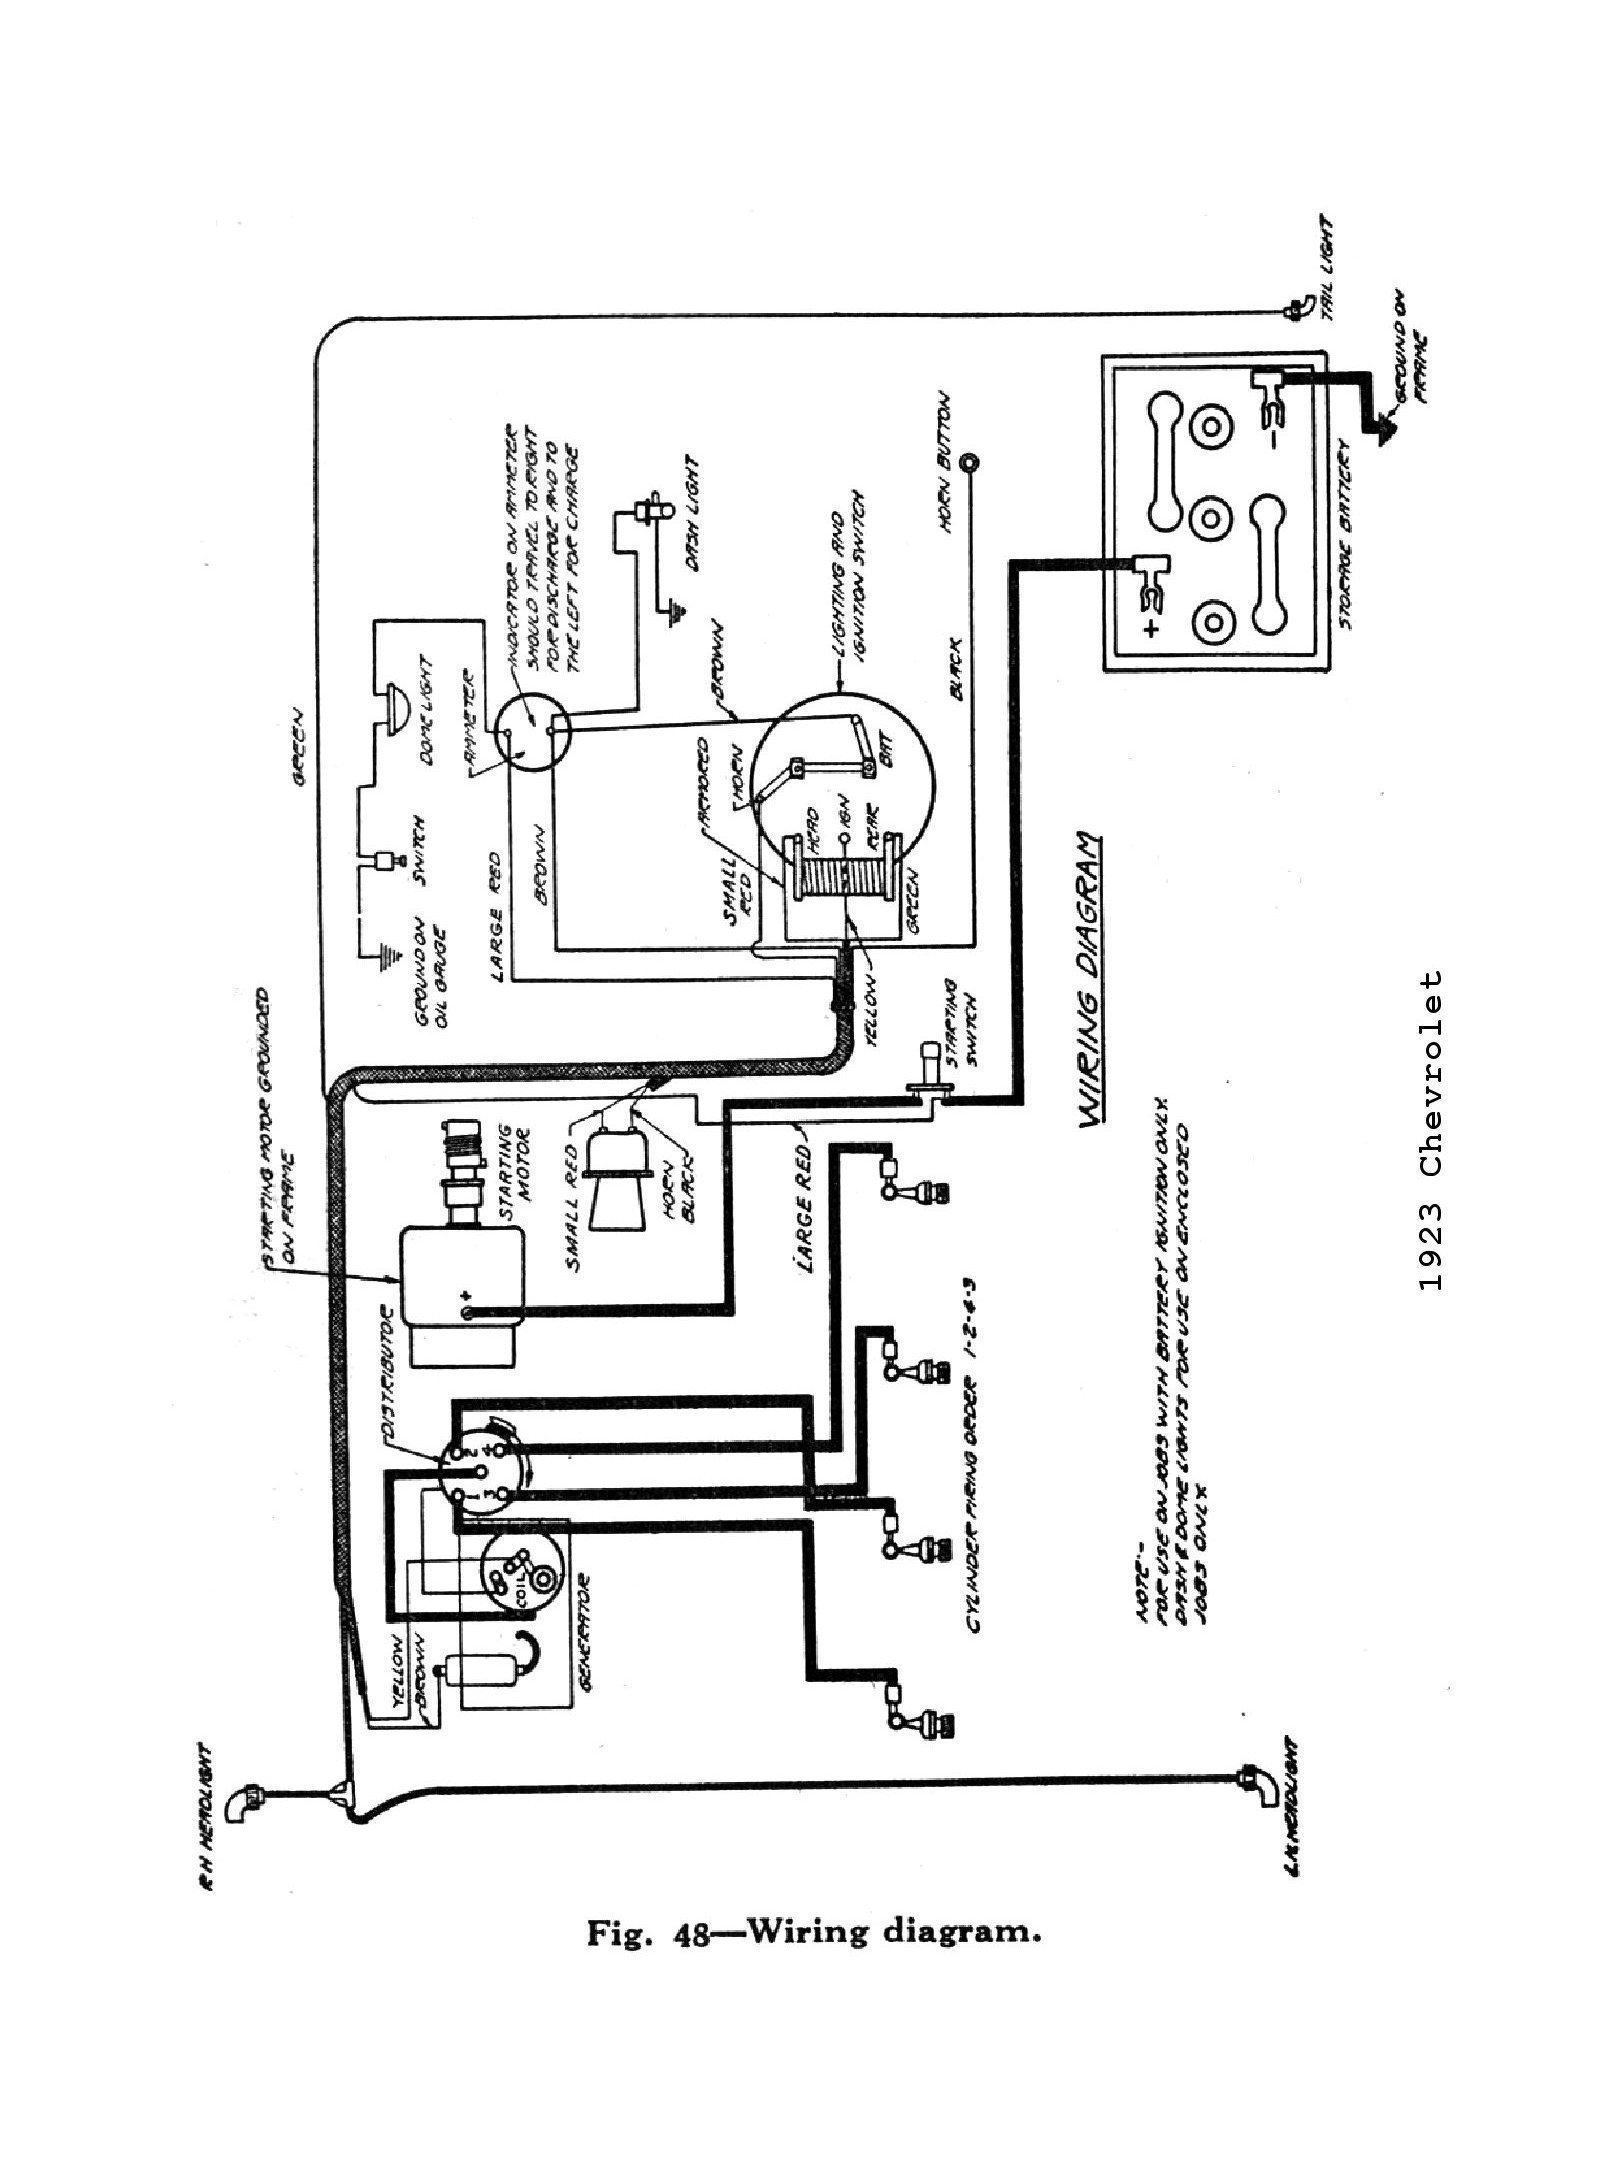 1984 chevy truck fuse box diagram truck wiring diagram